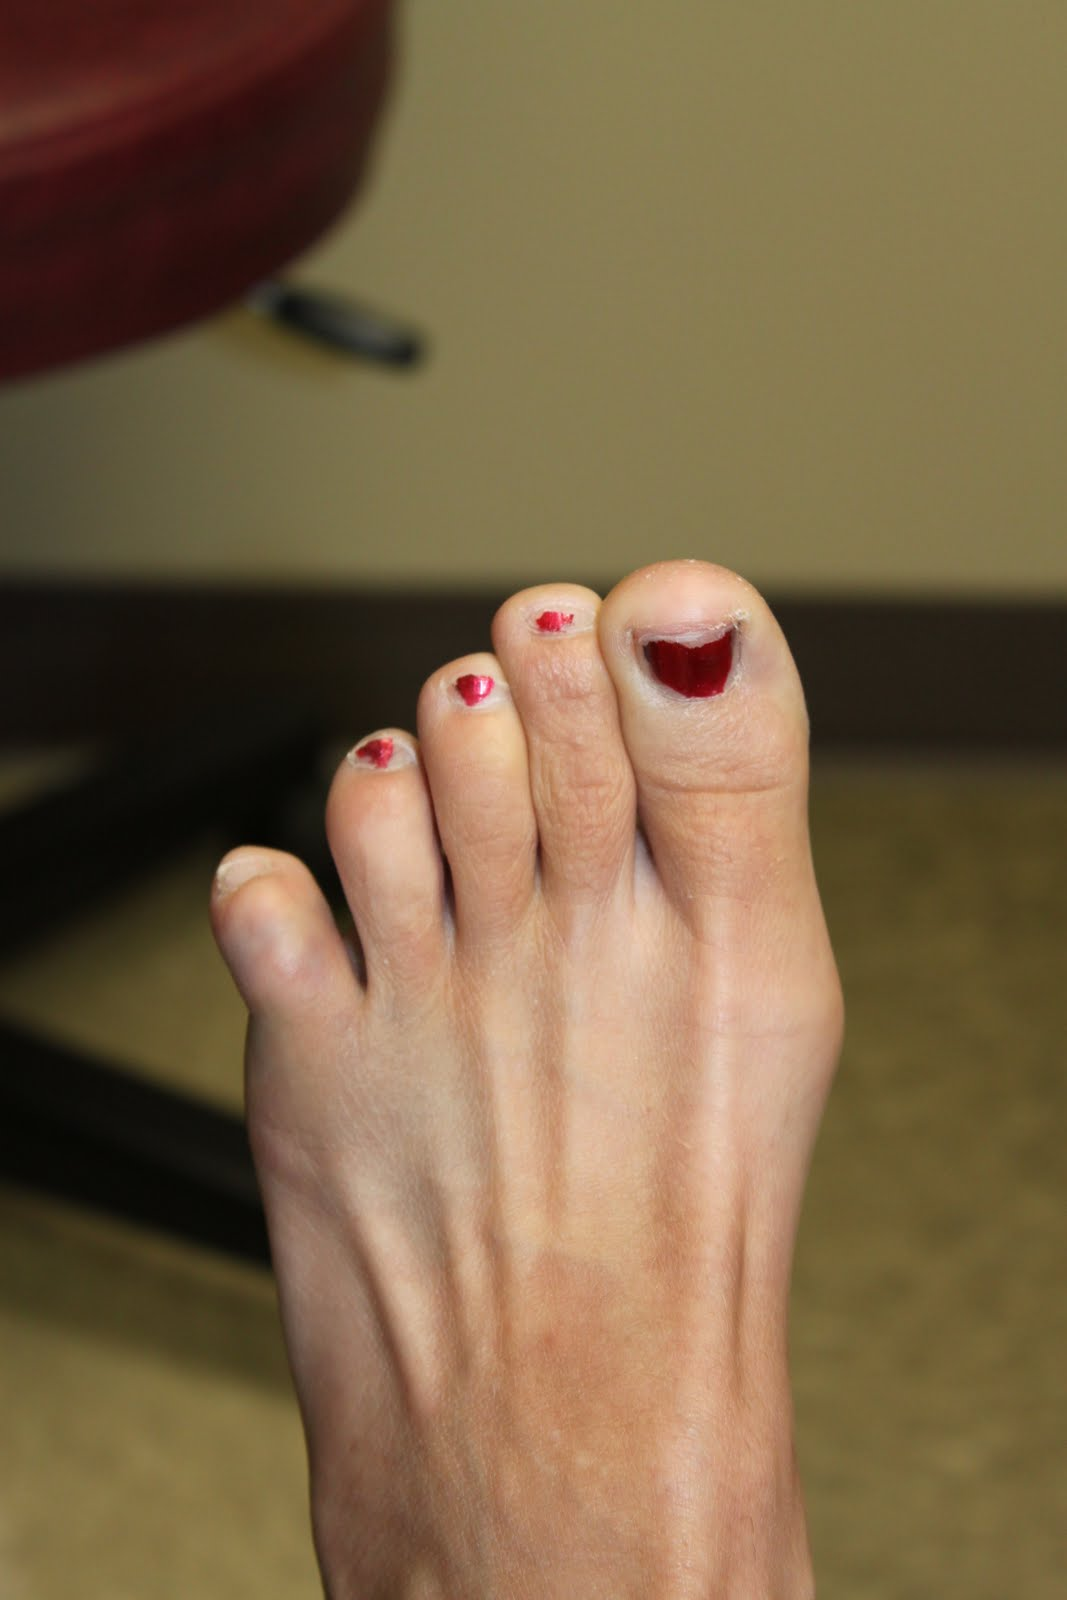 how to break your pinky toe